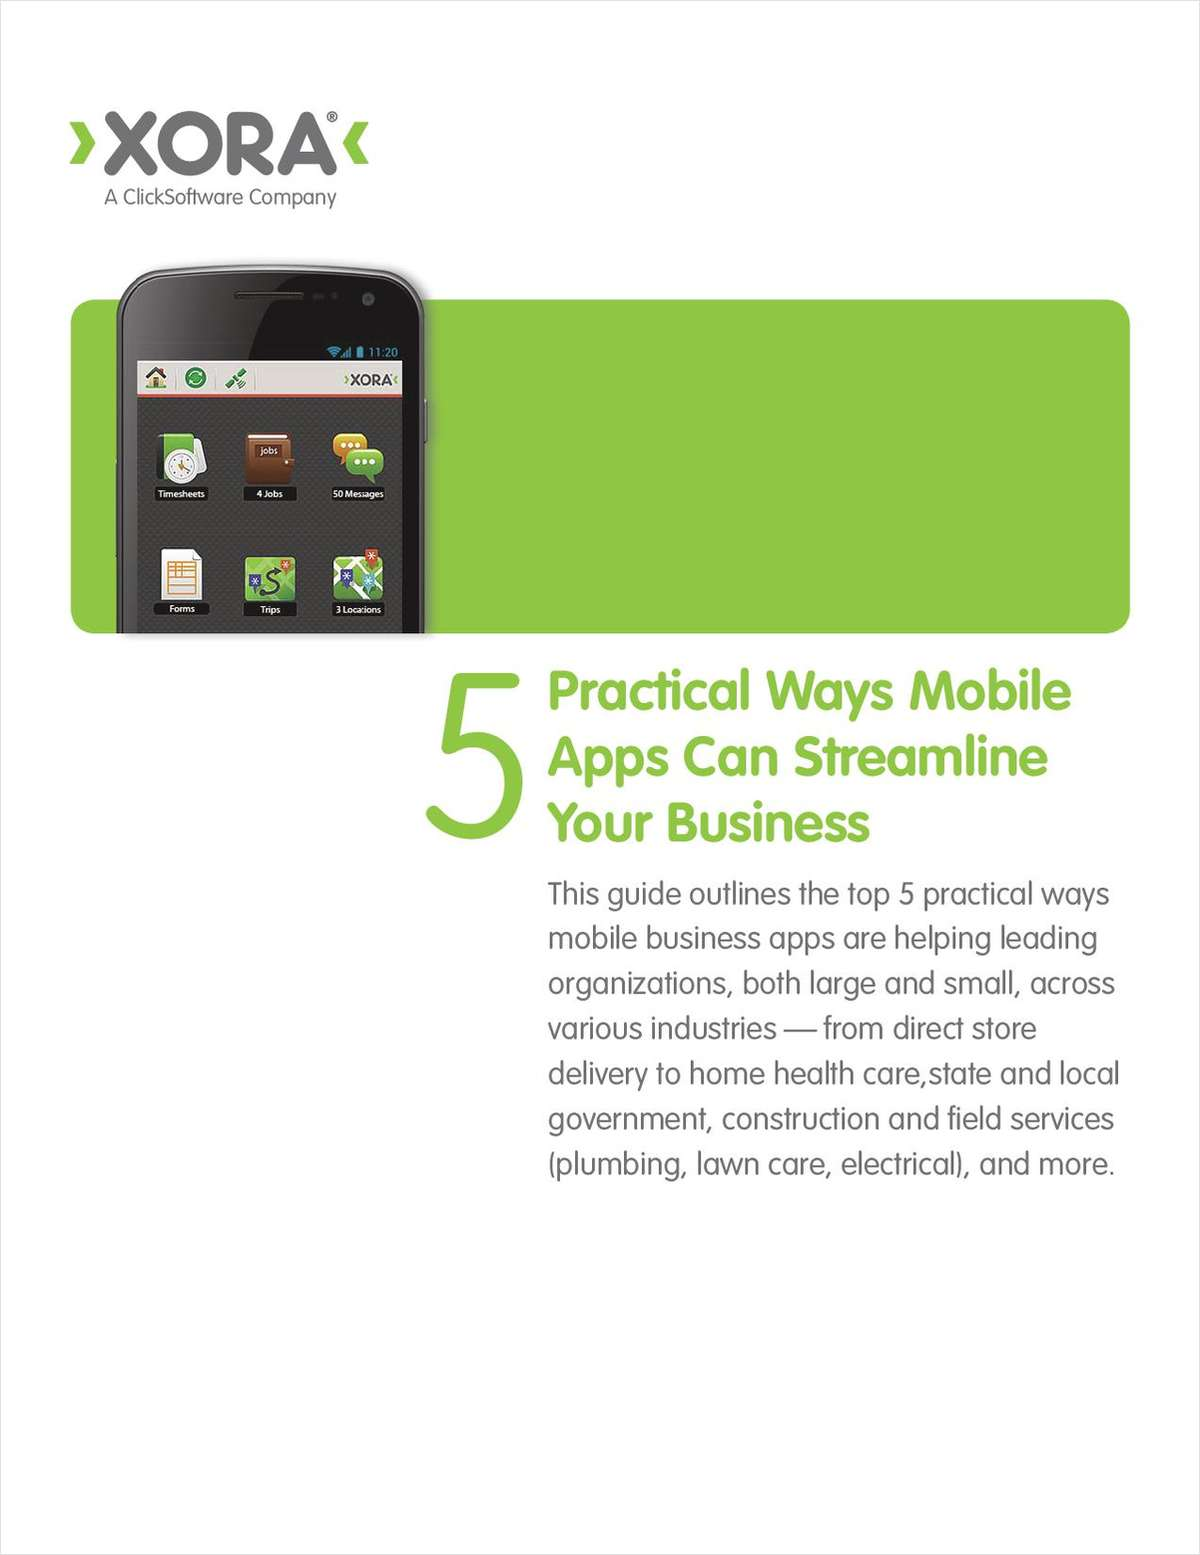 5 Practical Ways Apps Can Streamline Your Mobile Business